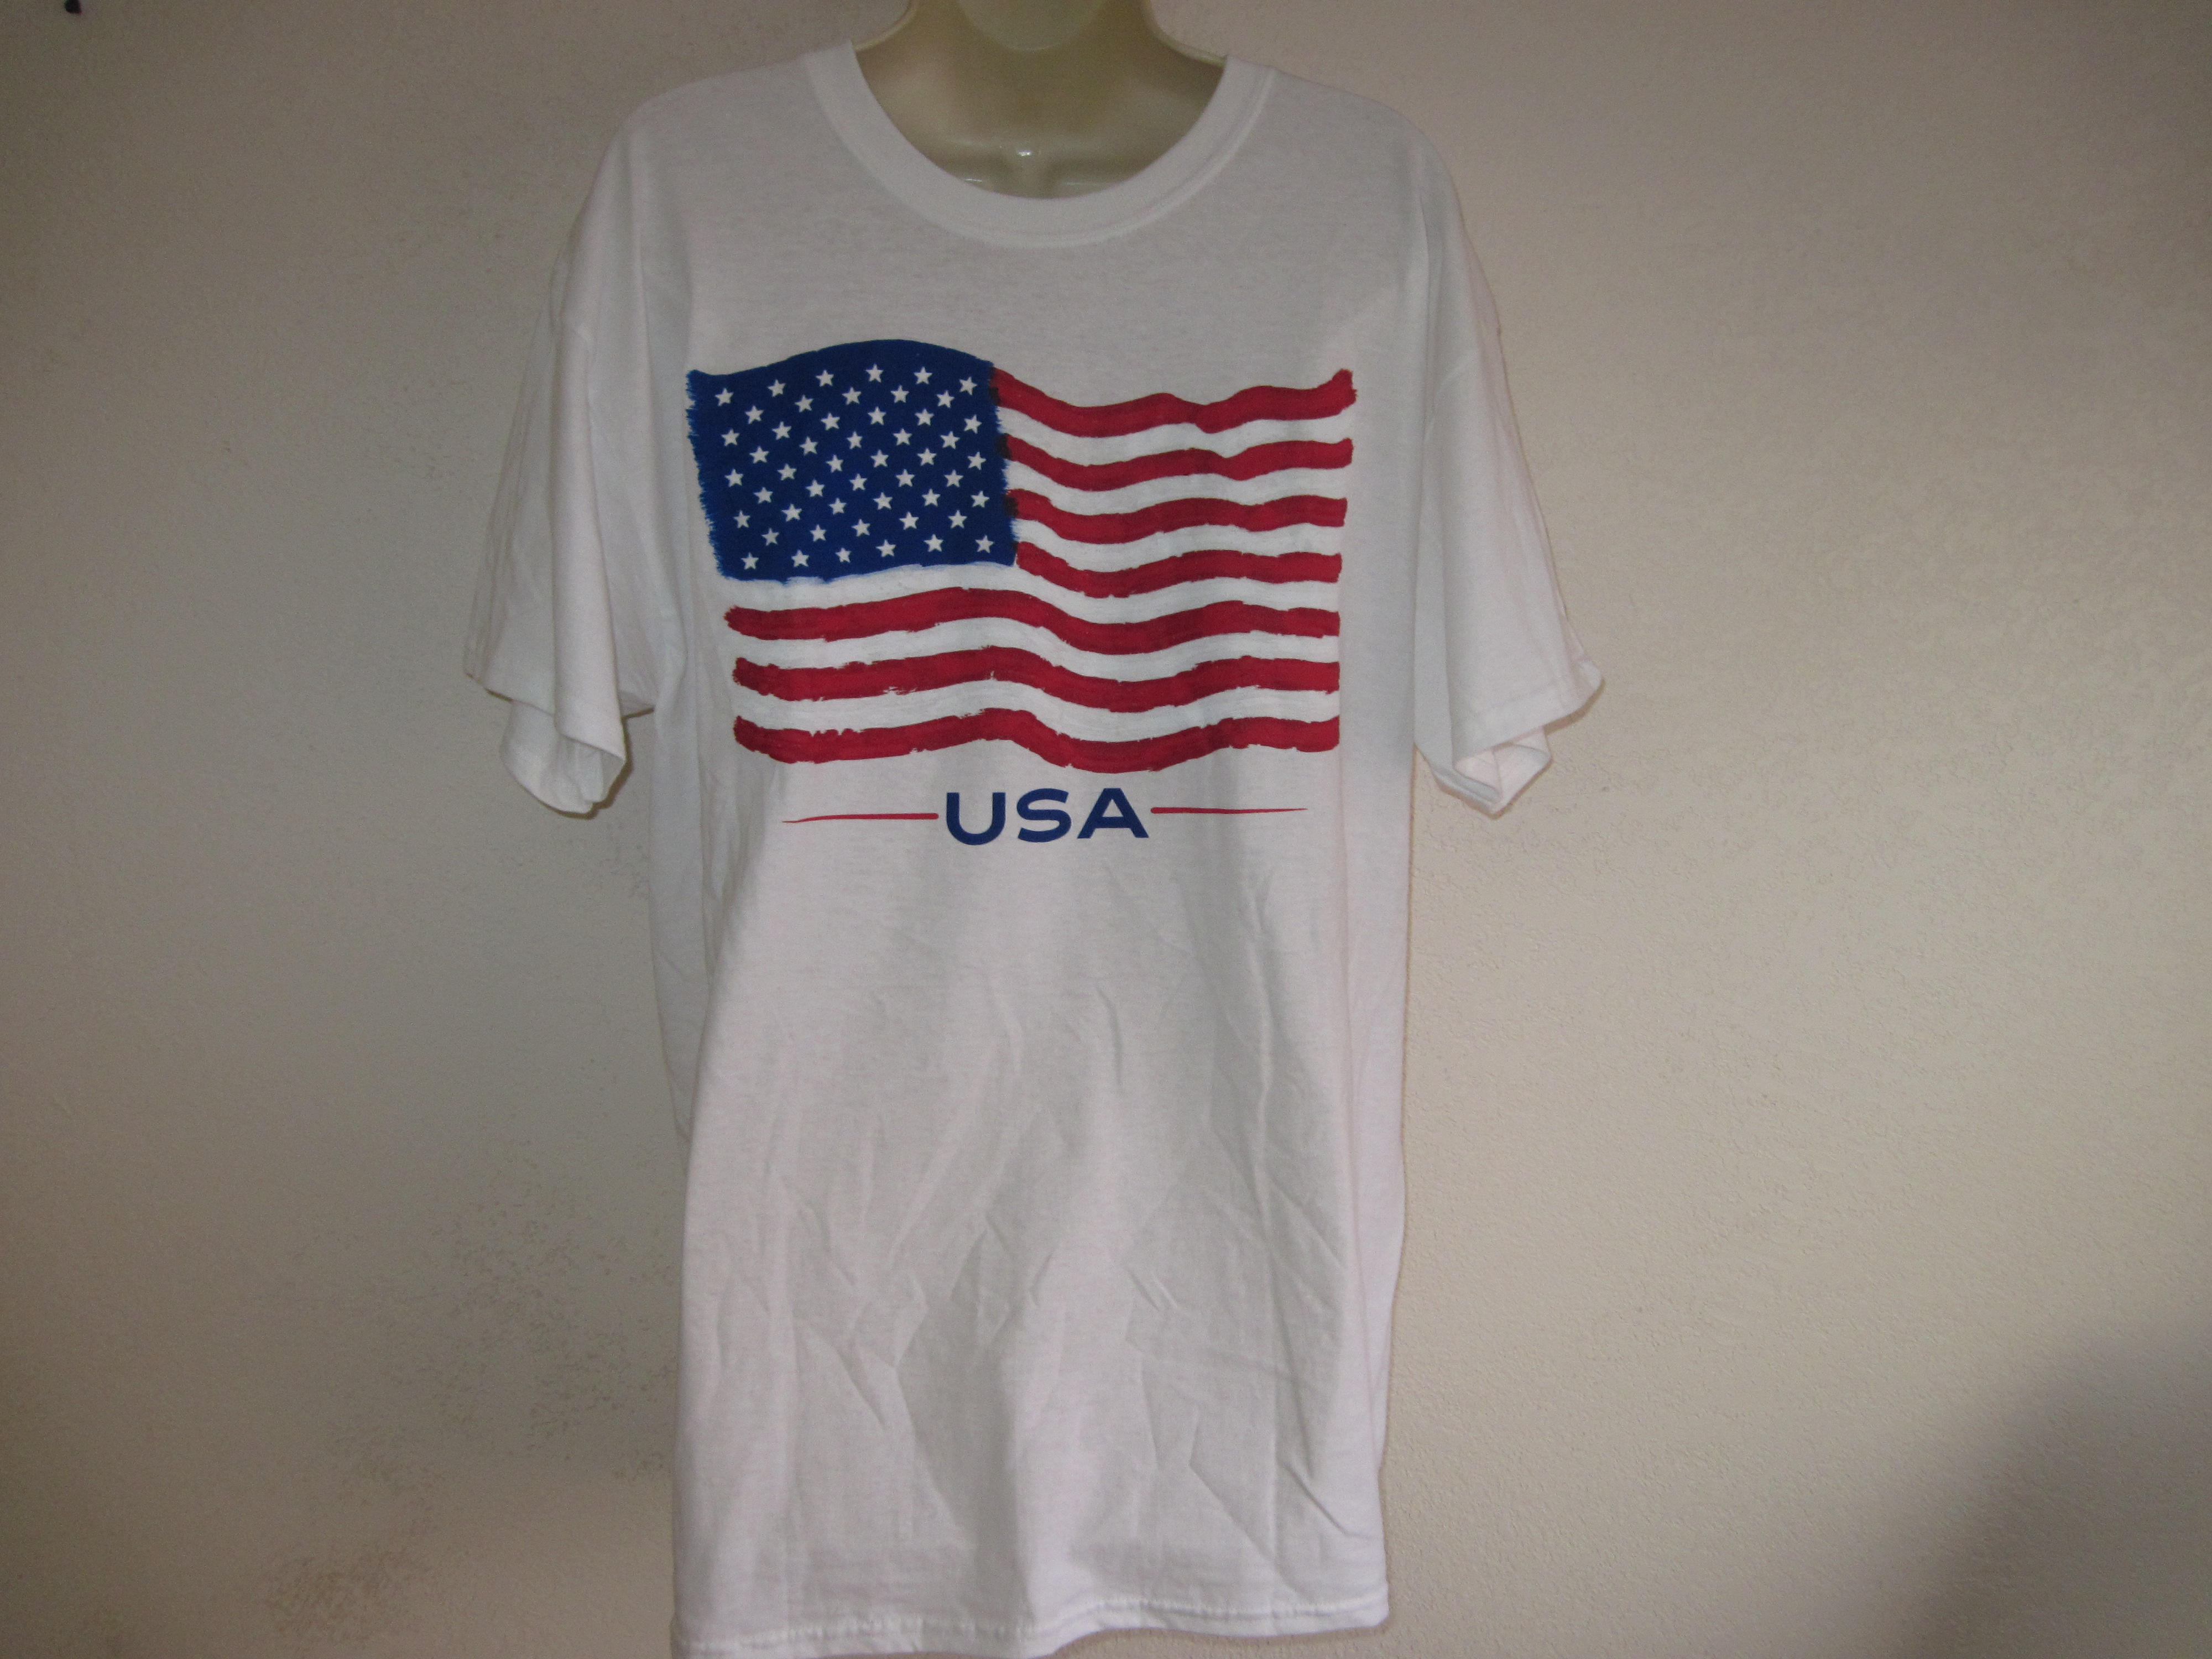 American Flag Sz Lg Short Sleeve T-Shirt white